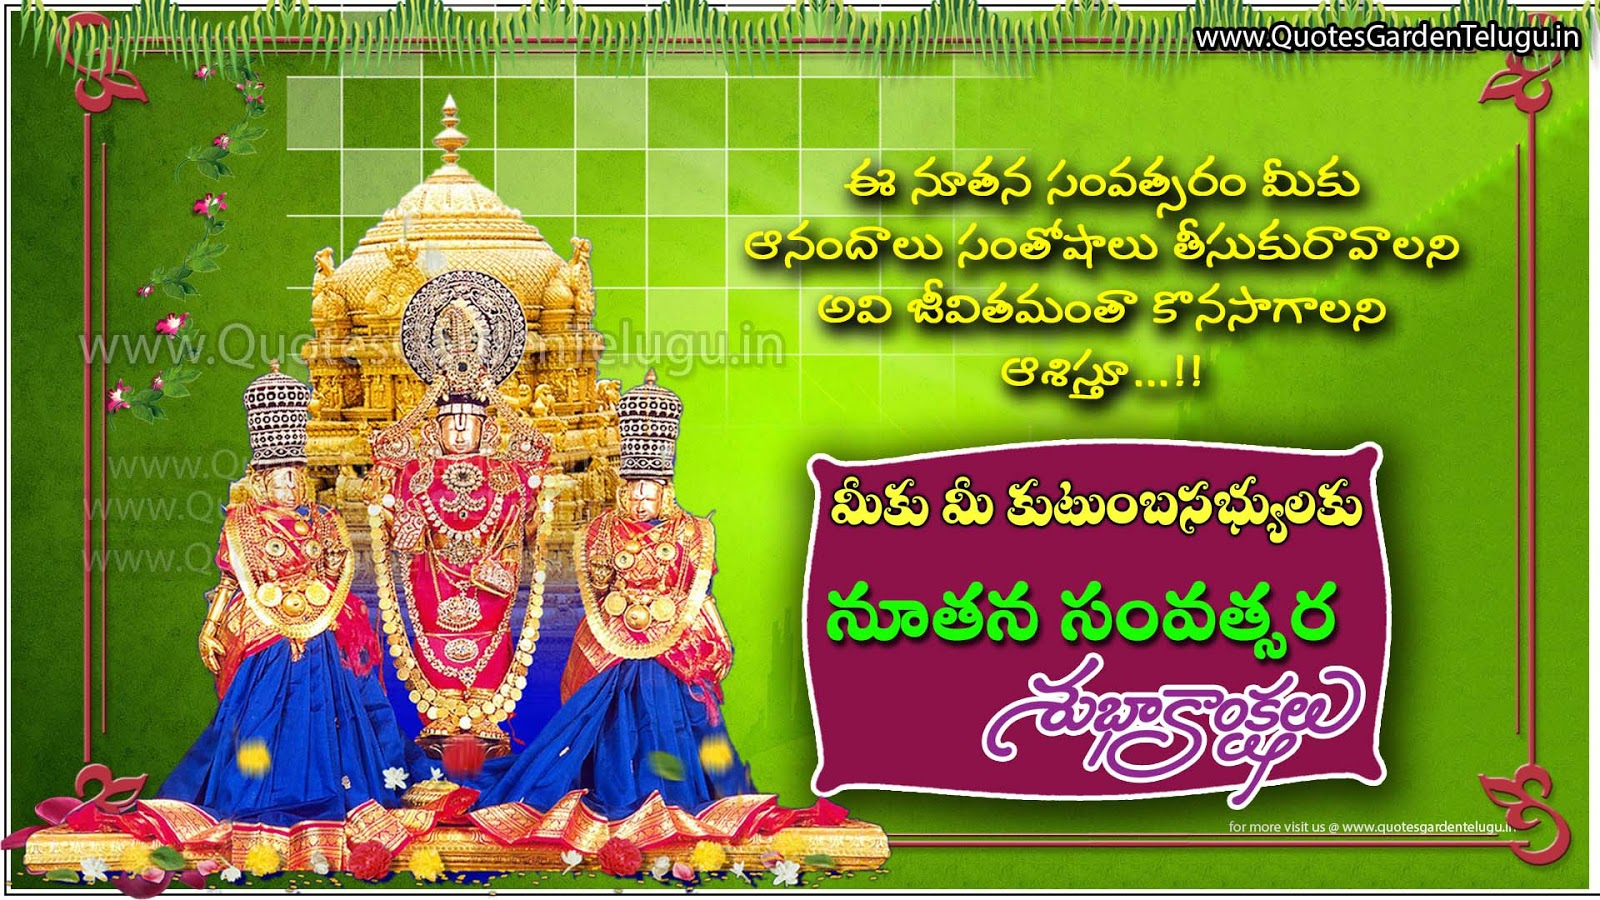 2018 telugu new year greetings messages quotes wallpapers quotes 2018 telugu new year greetings messages quotes wallpapers kristyandbryce Image collections